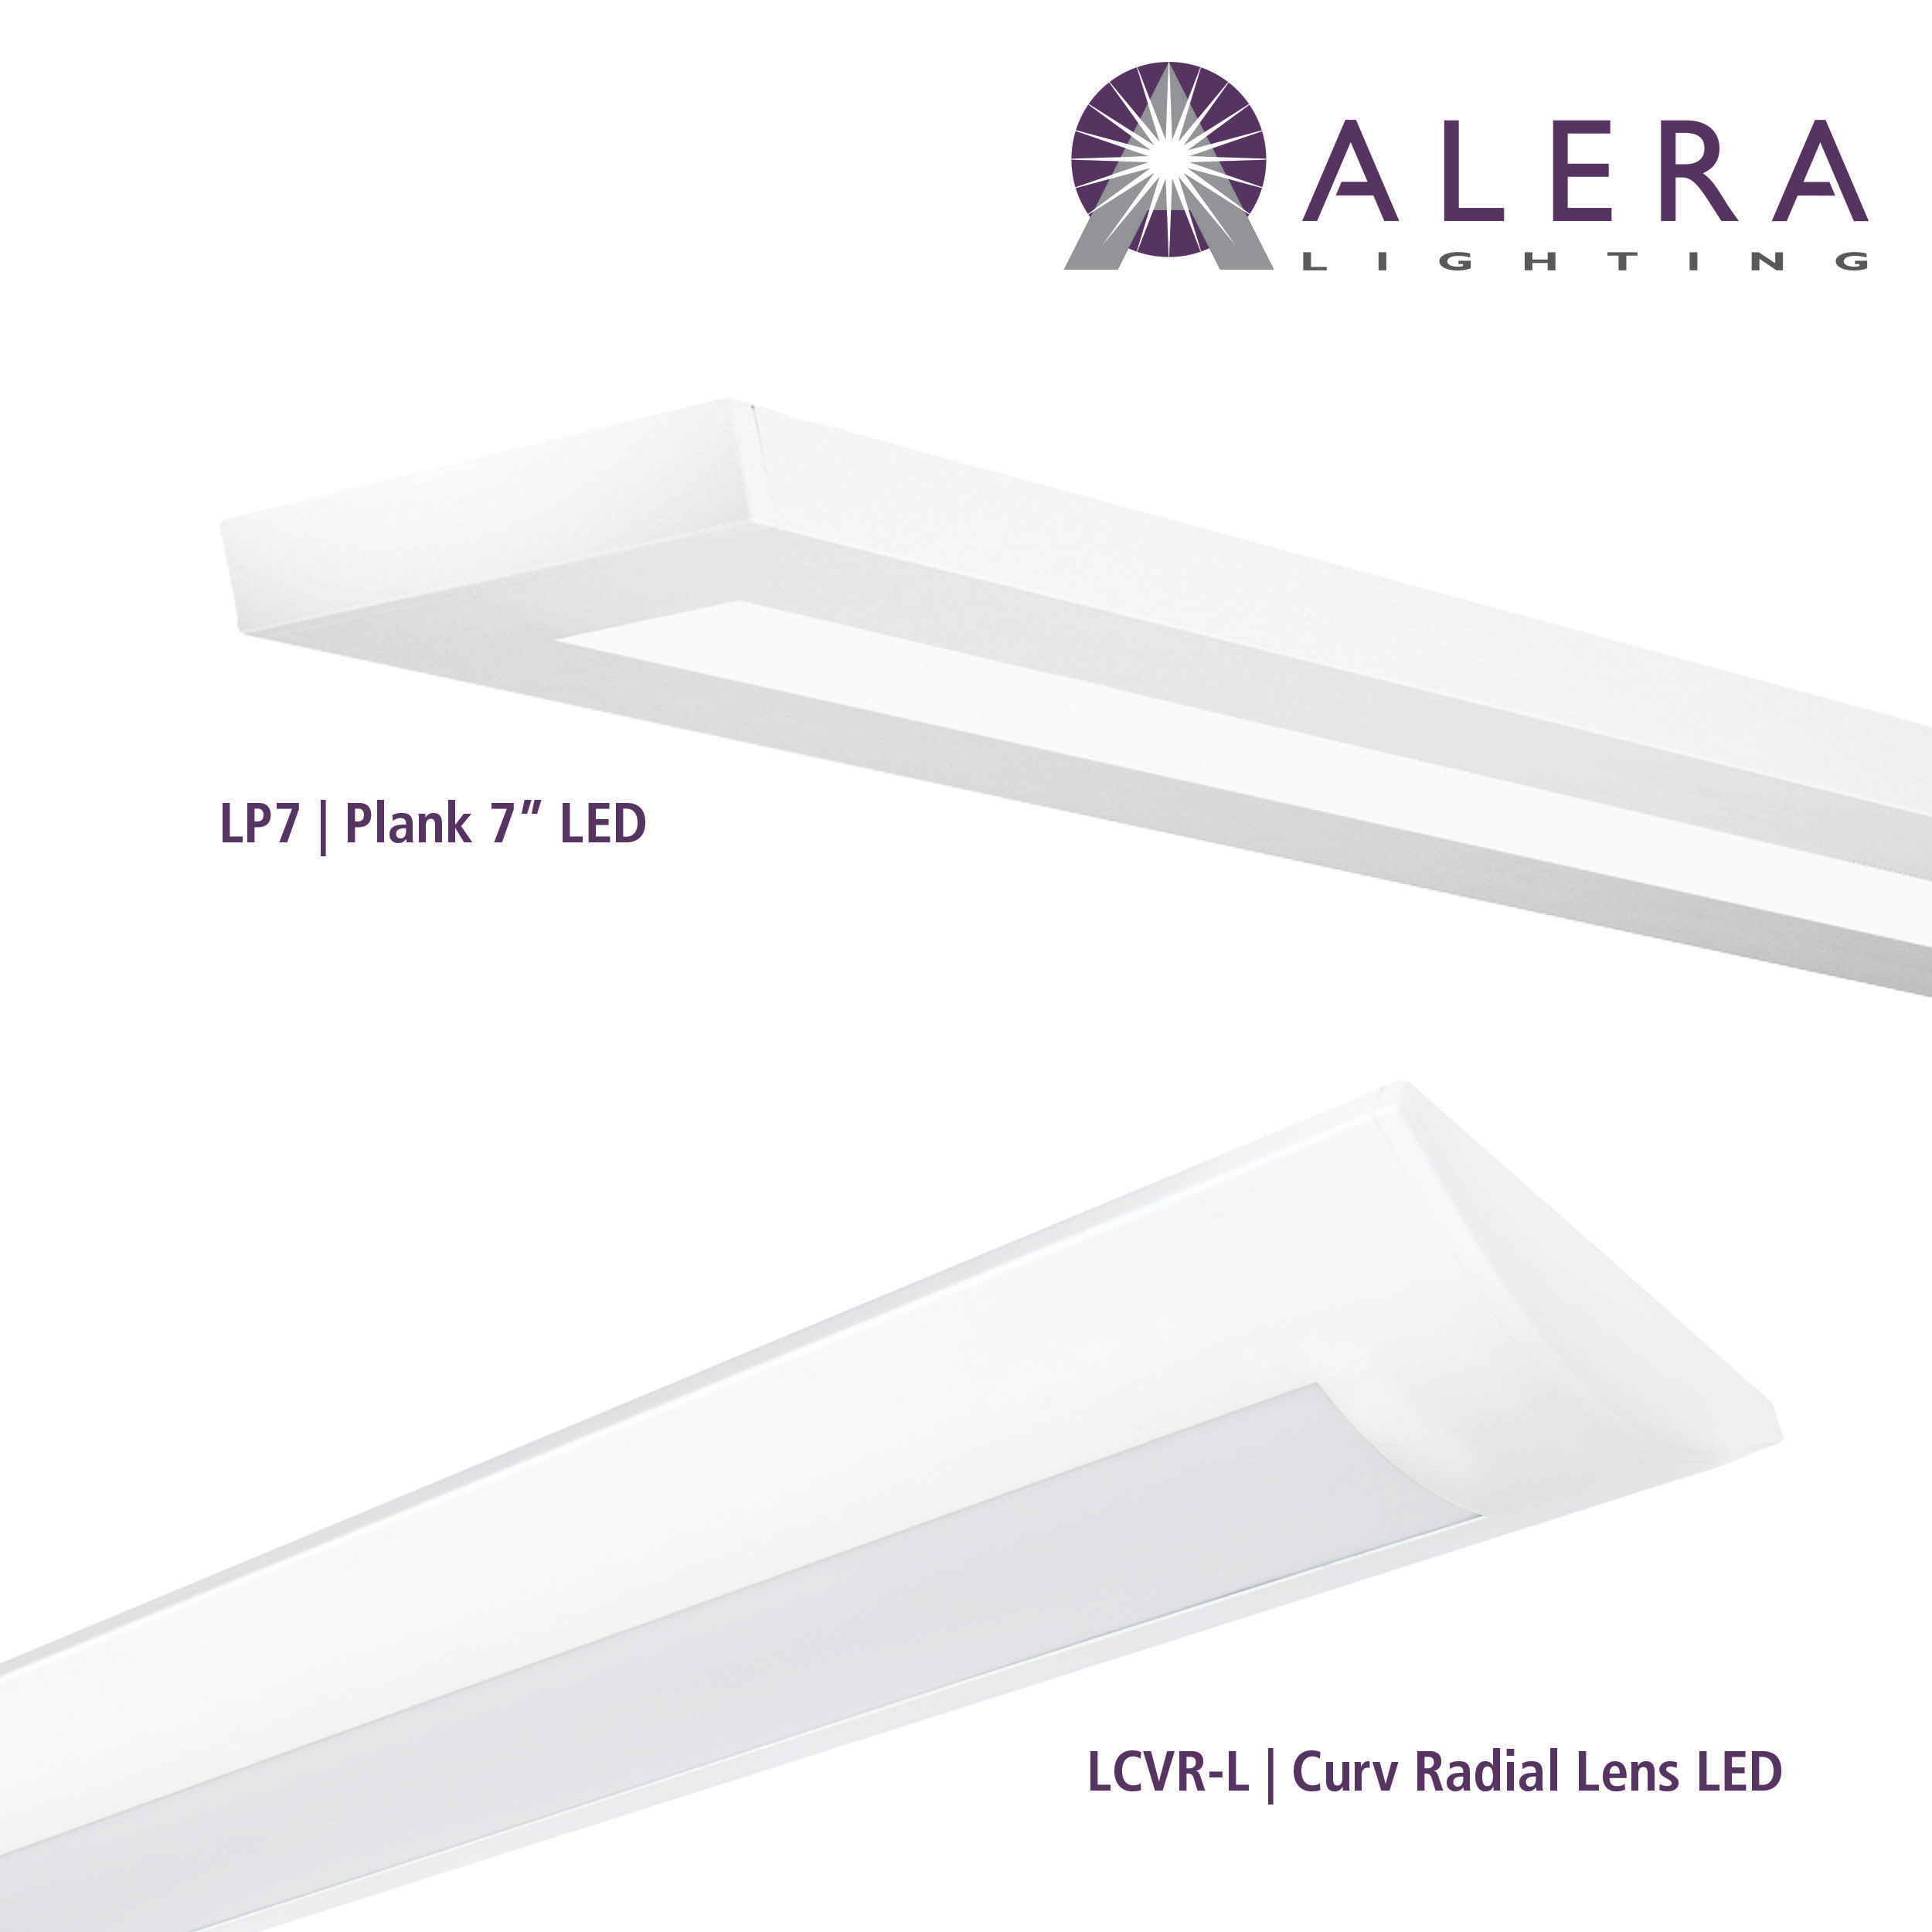 Alera lighting introduces two new linear led lighting fixtures alera lighting introduces two new linear led lighting fixtures plank and curv radial lens business wire arubaitofo Choice Image